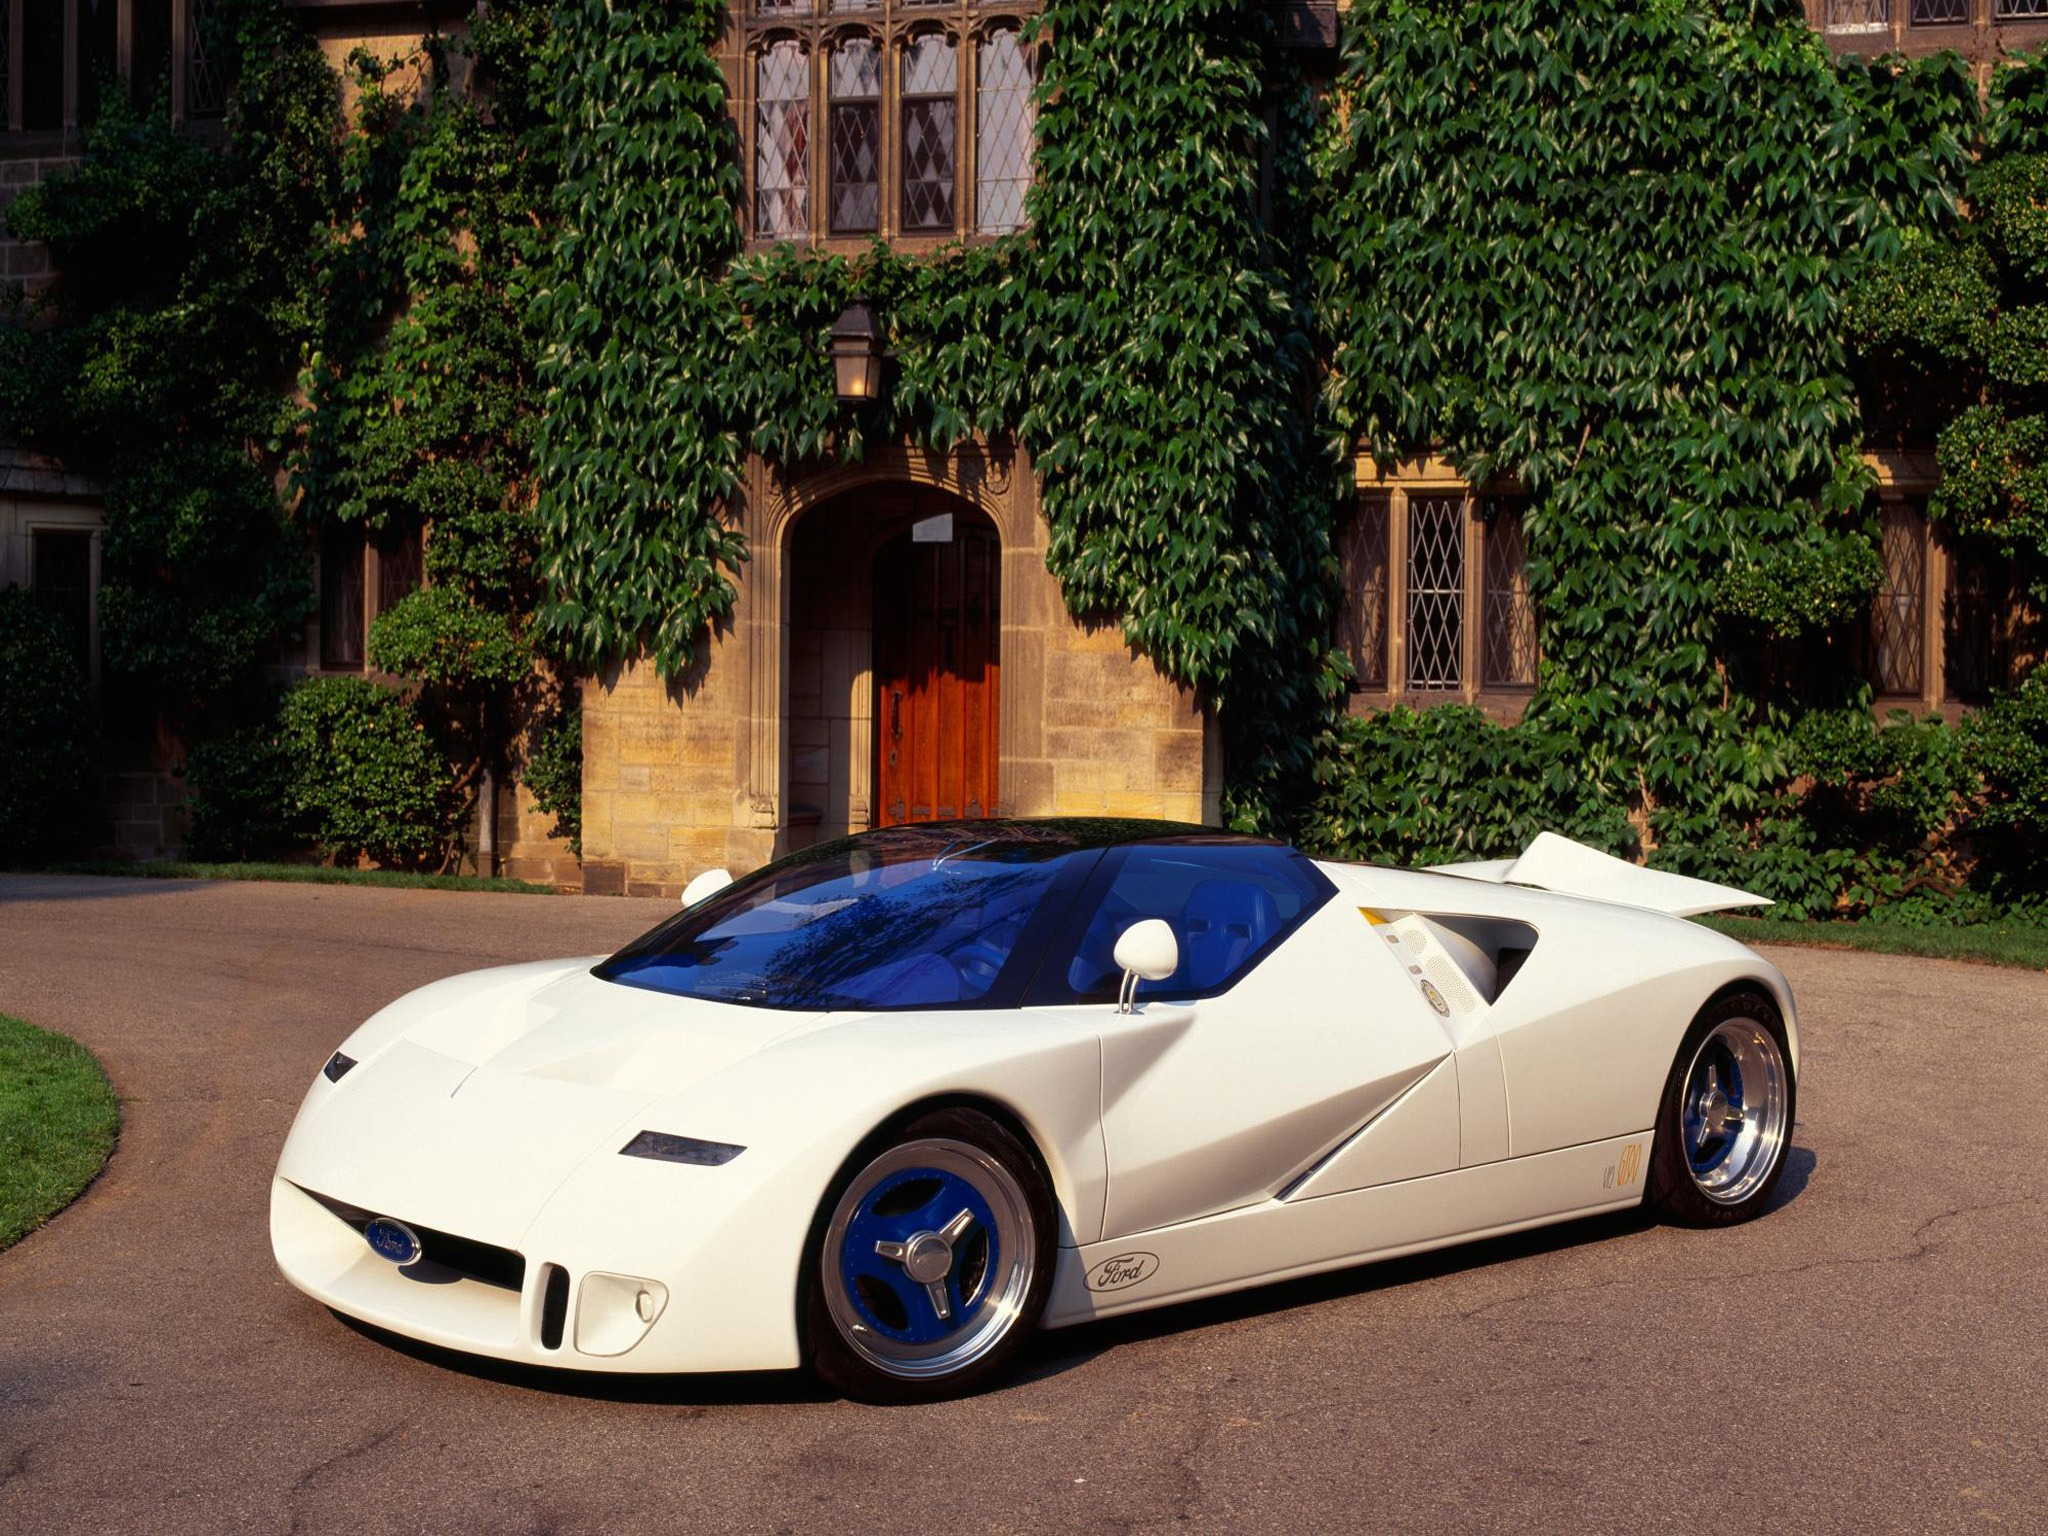 Ford GT90 Concept (1995)